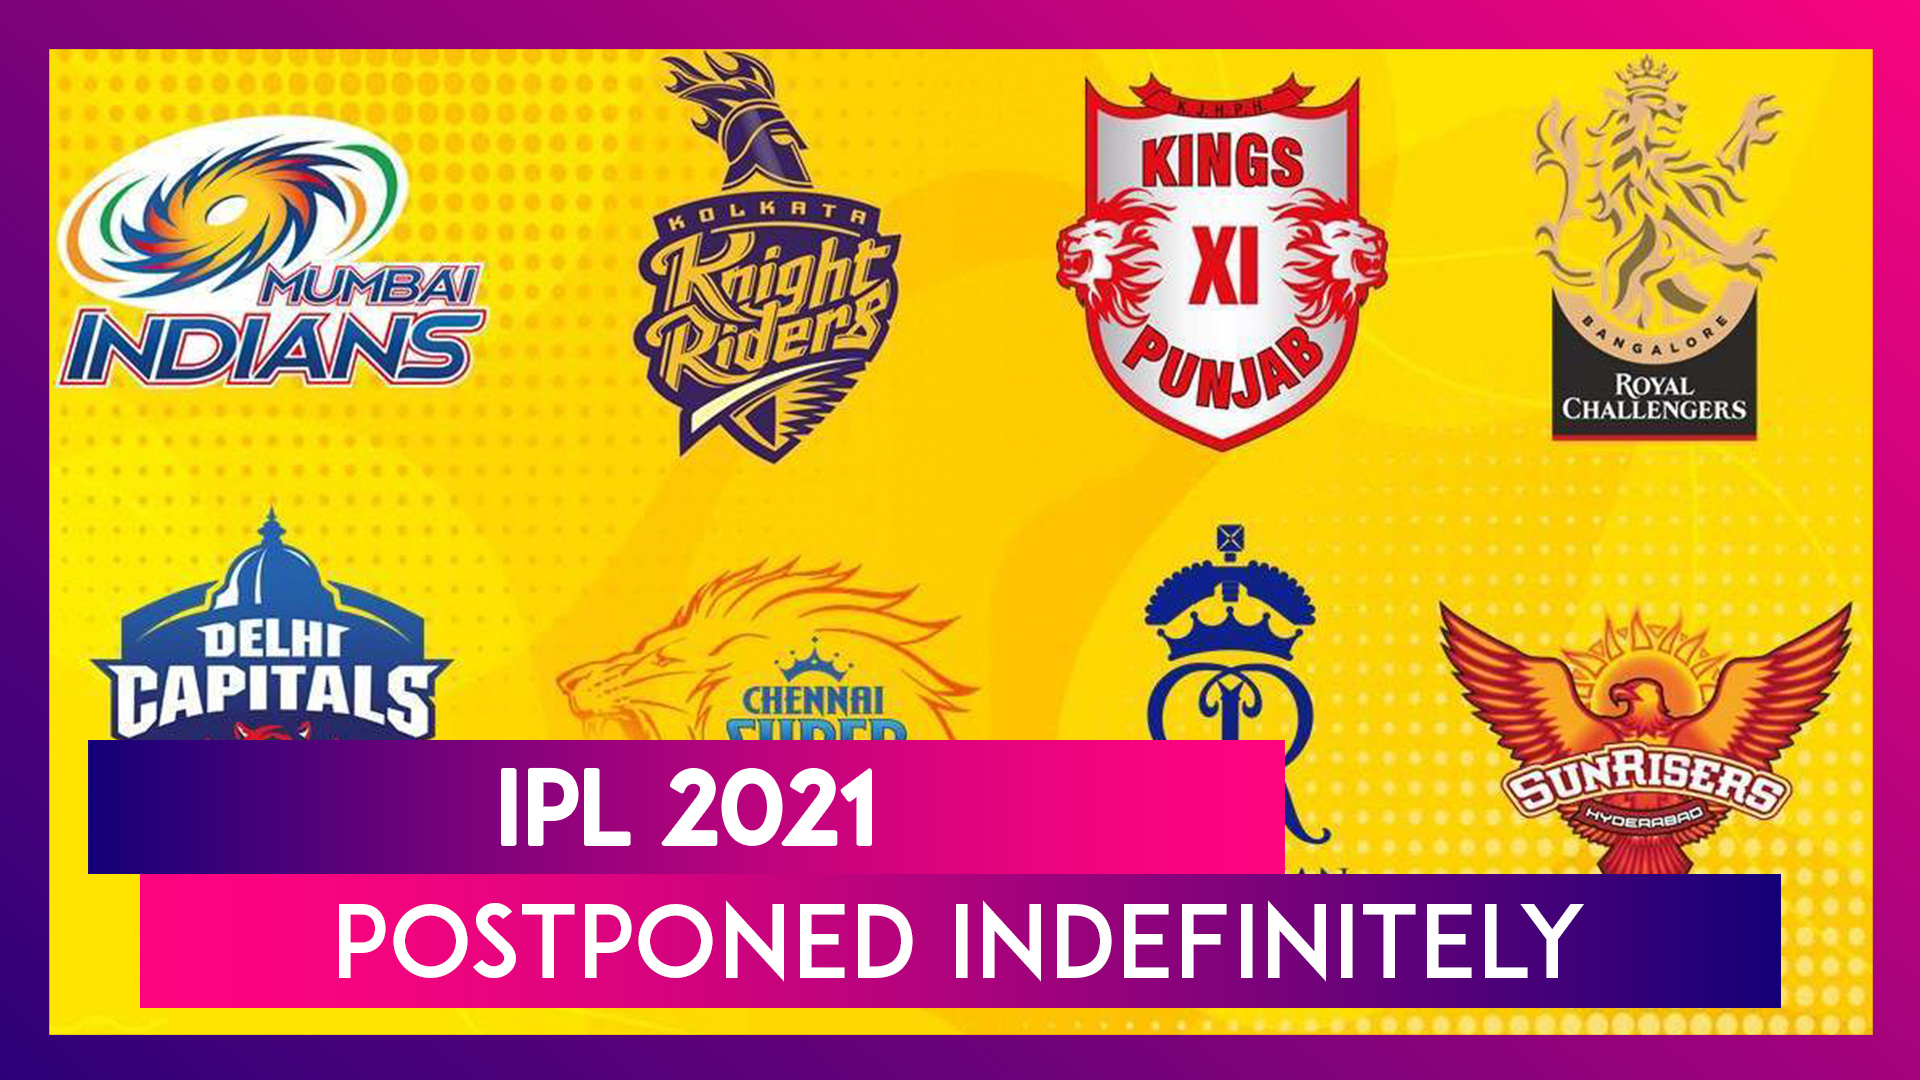 IPL 2021 Postponed Indefinitely After A String of COVID-19 Positive Cases in Bio-Bubble